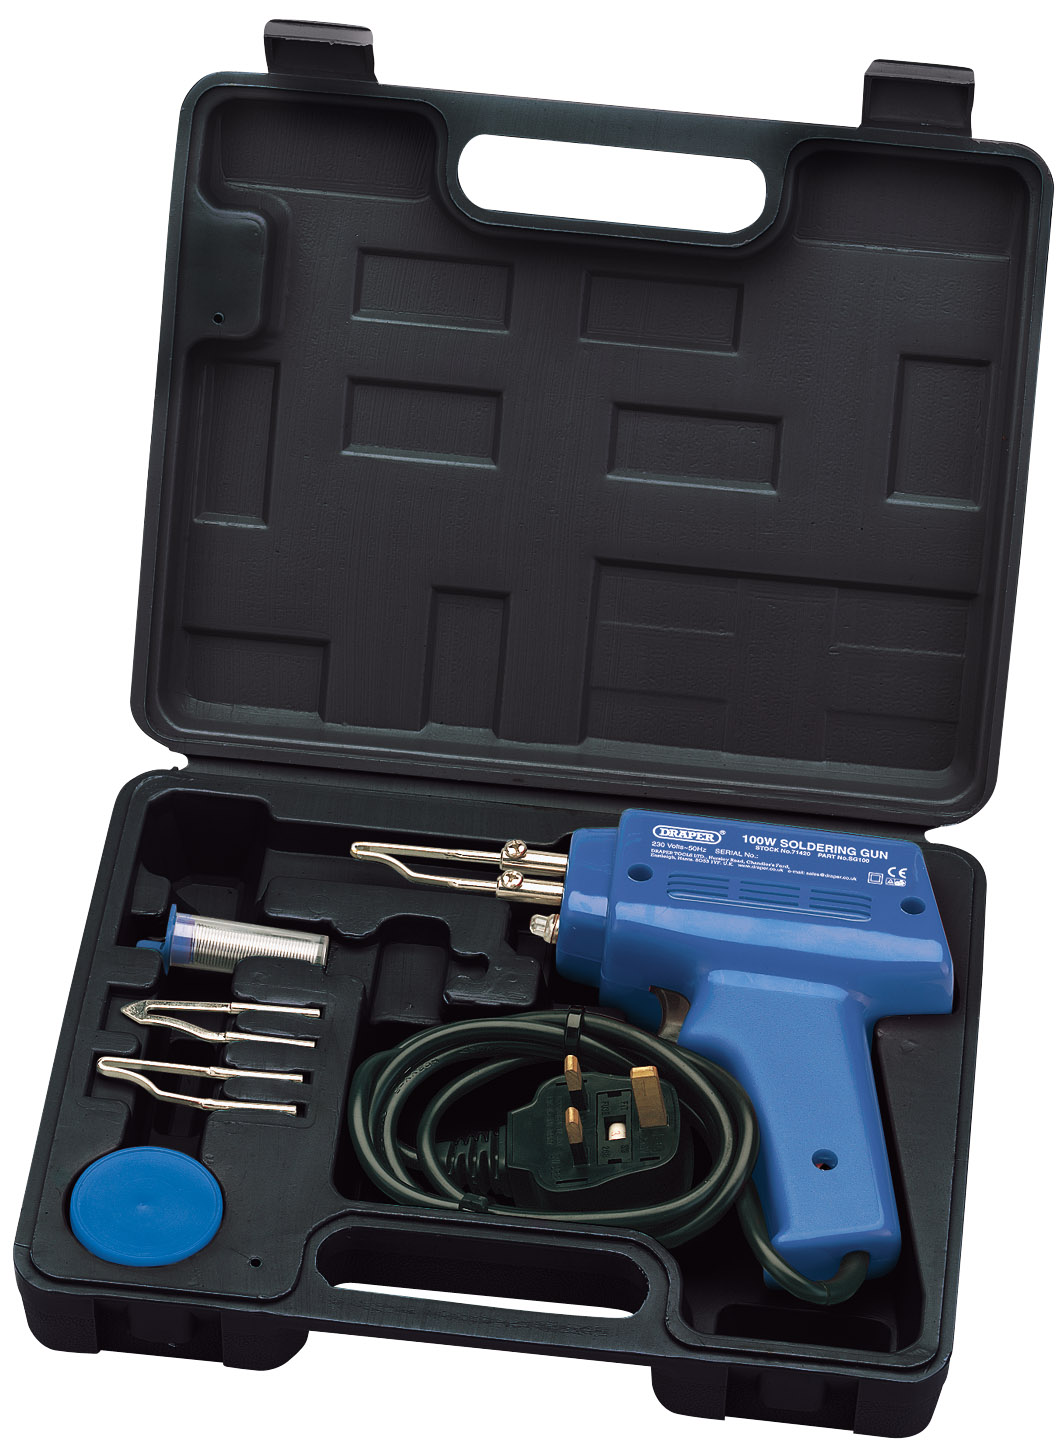 Draper 71420 Sg100 Complete 100 Watt Soldering Iron And Gun Kit For Circuit Boards What Kind Of Wattage